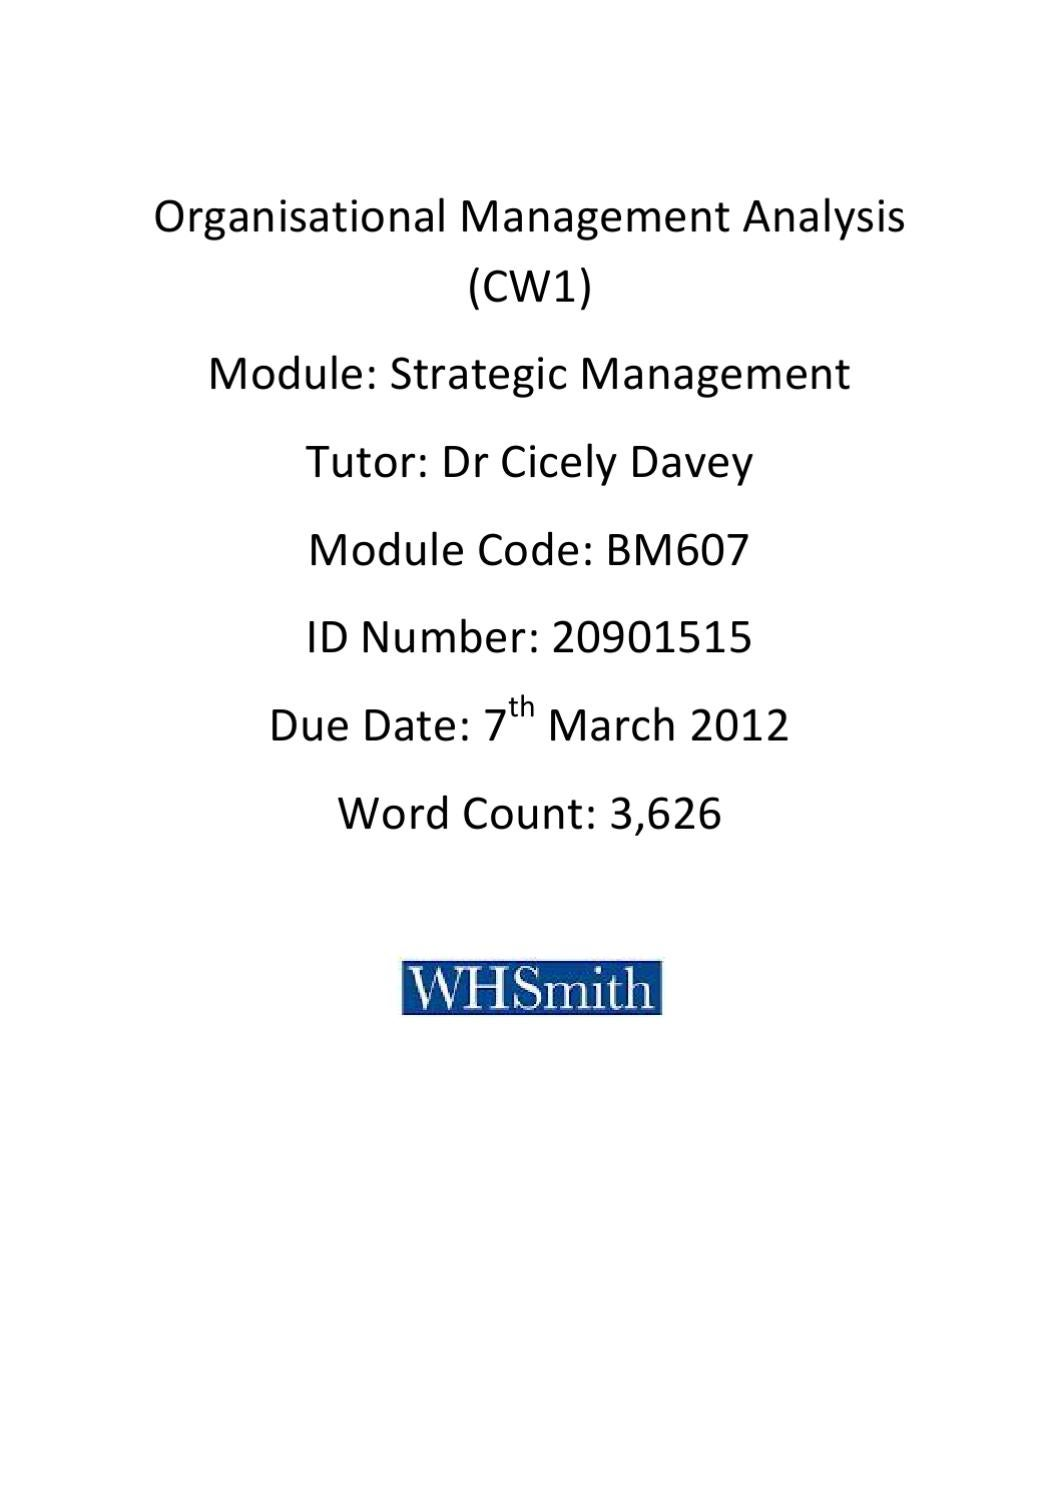 introduction to management cw1 octobe {cw1,mjbuco,rong,luan}@usibmcom abstract  capturing and managing the  sla contract data (eg, quality measurement data  1 introduction   management, gartner group research, strategic analysis report, october 16,  2000 6.